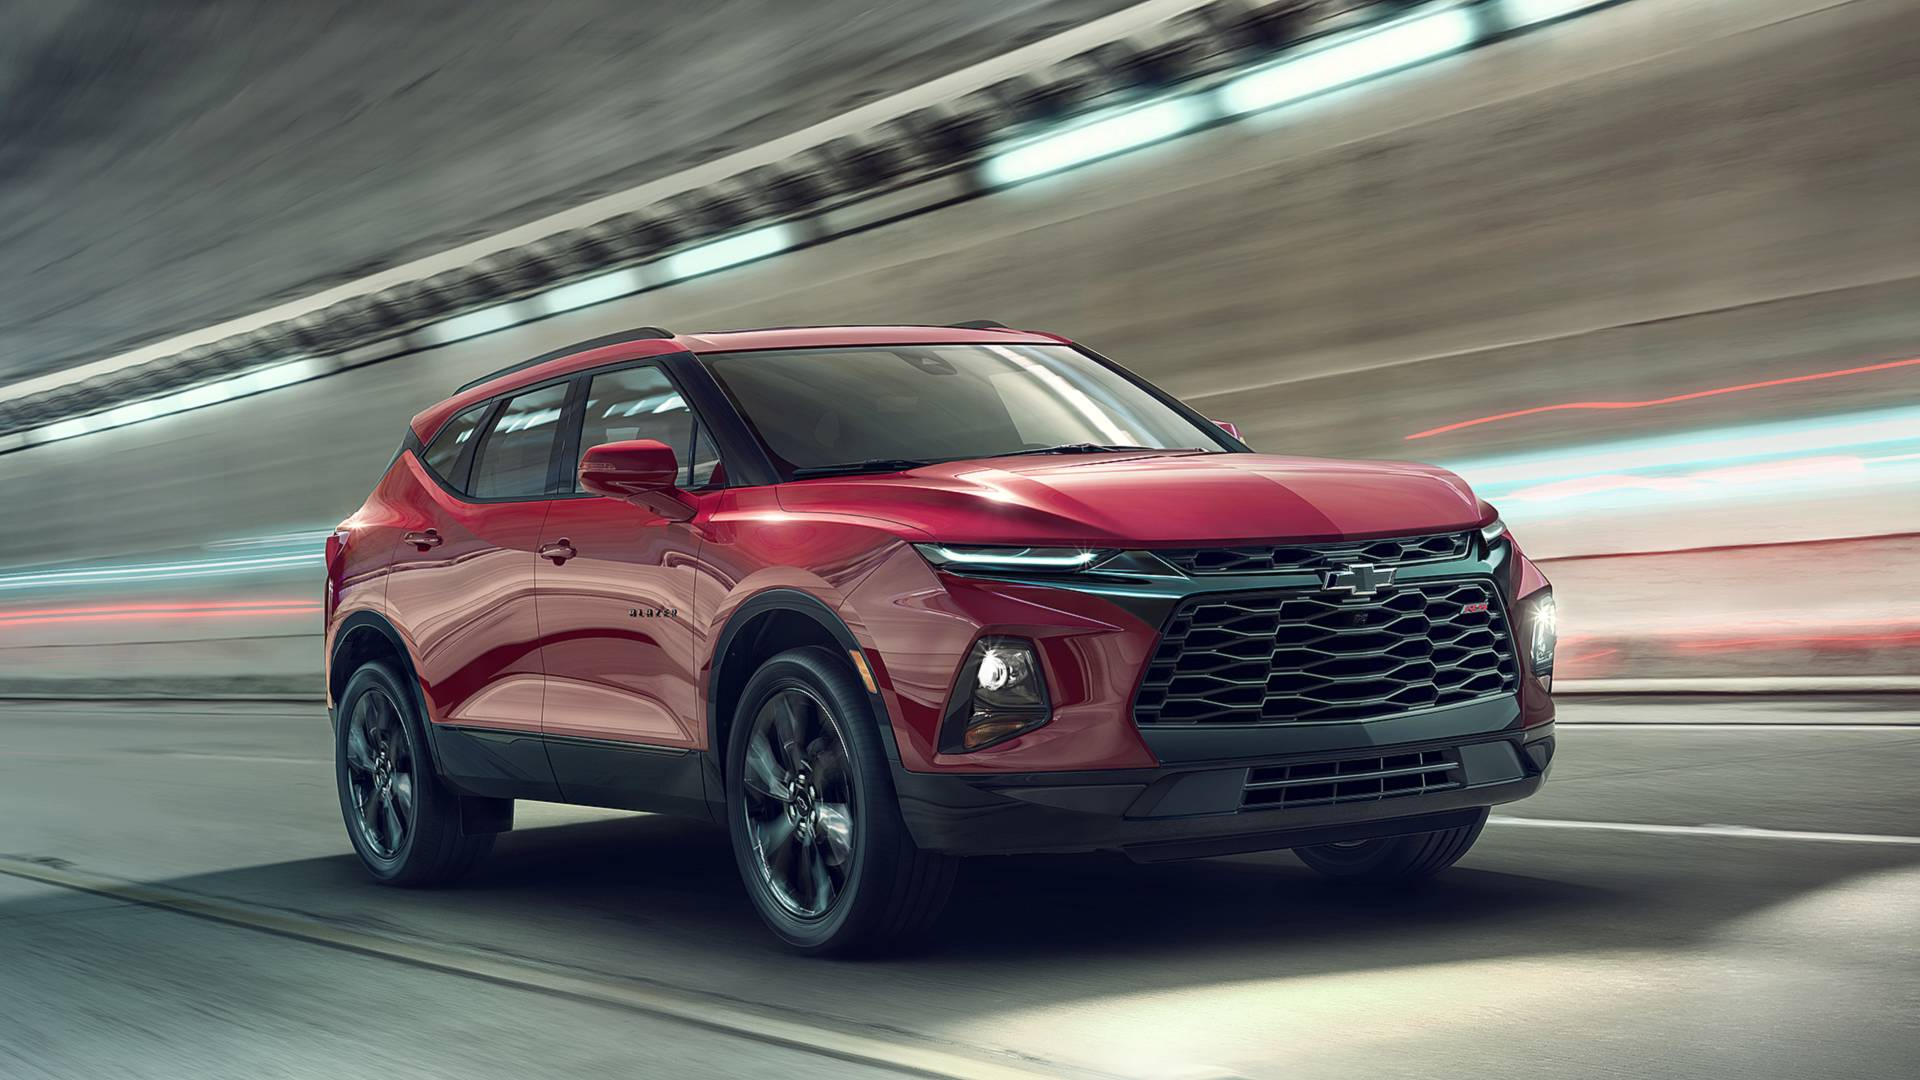 2020 Chevy Blazer: News, Design, Specs >> 2019 Chevy Blazer Revealed As A Sporty Crossover